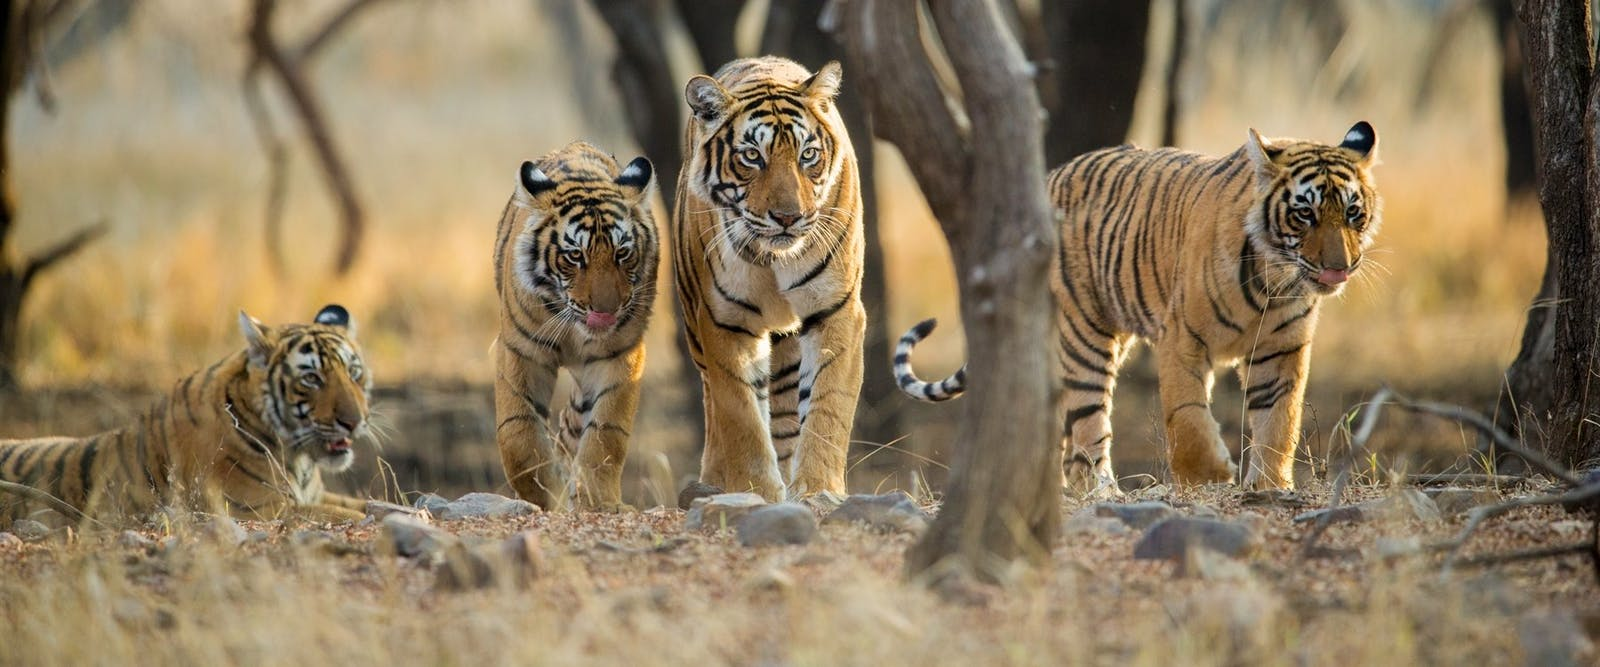 Tiger family at Ranthambore National Park